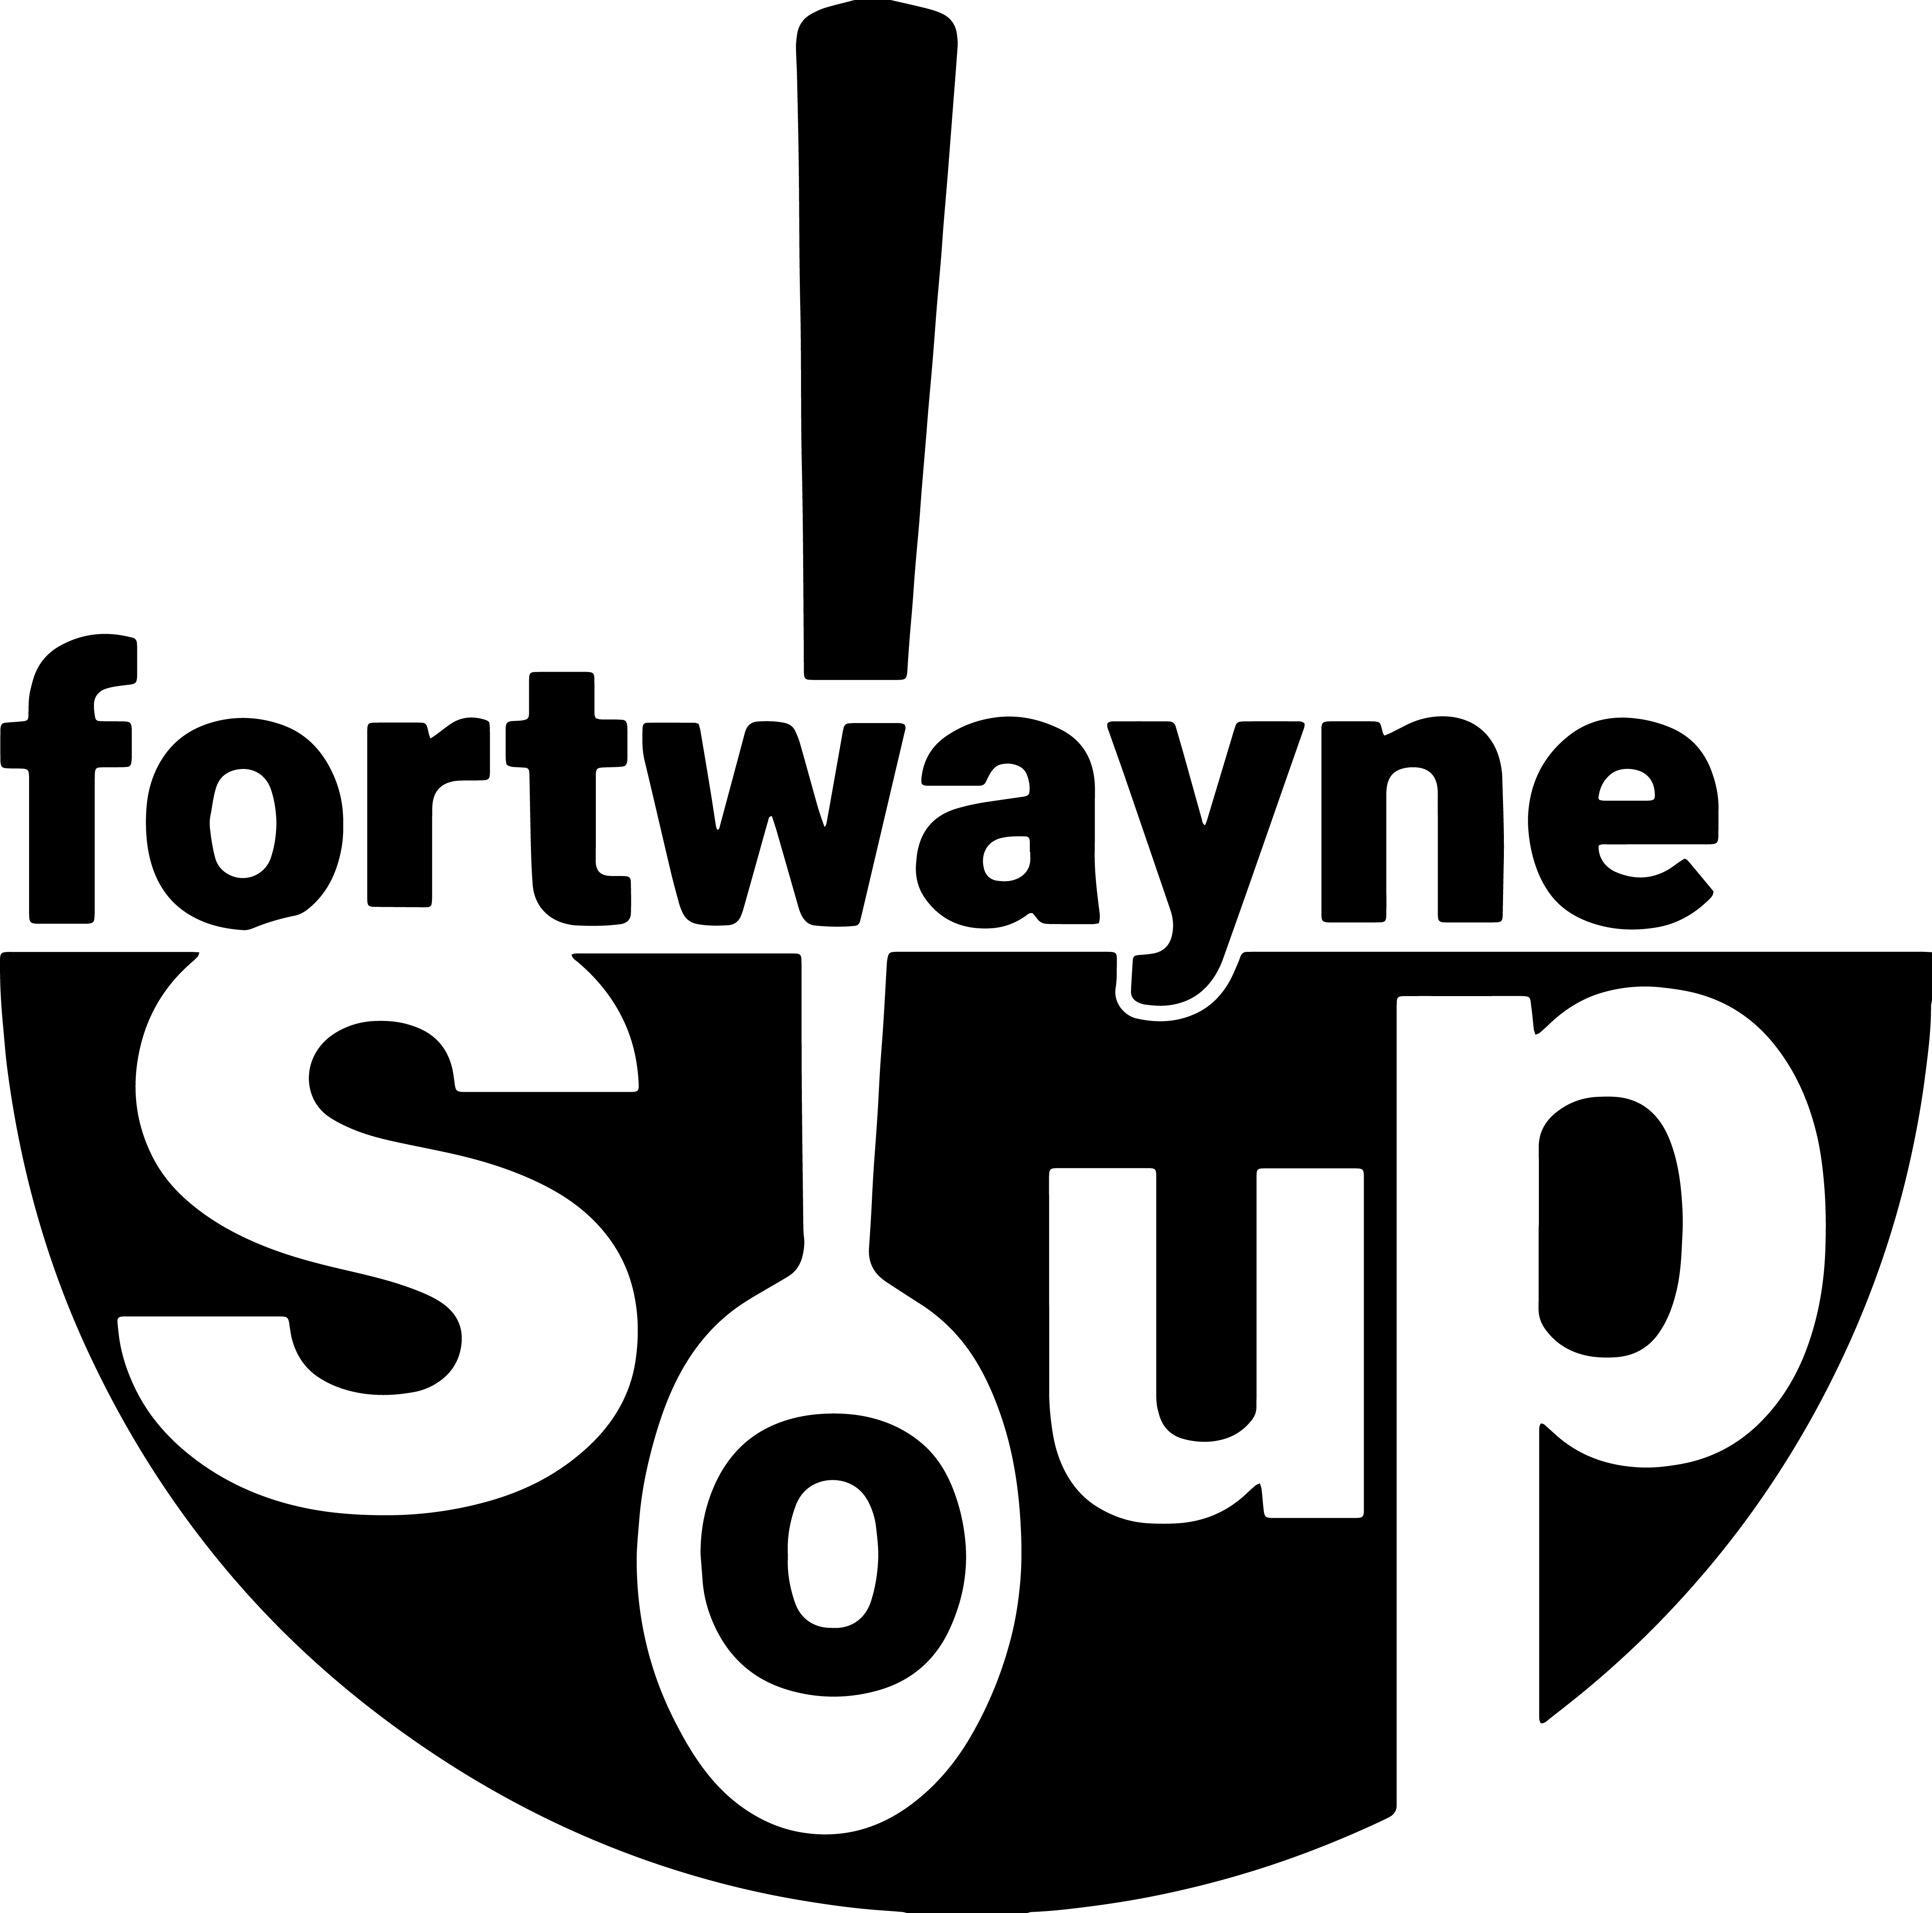 Fort Wayne SOUP logo